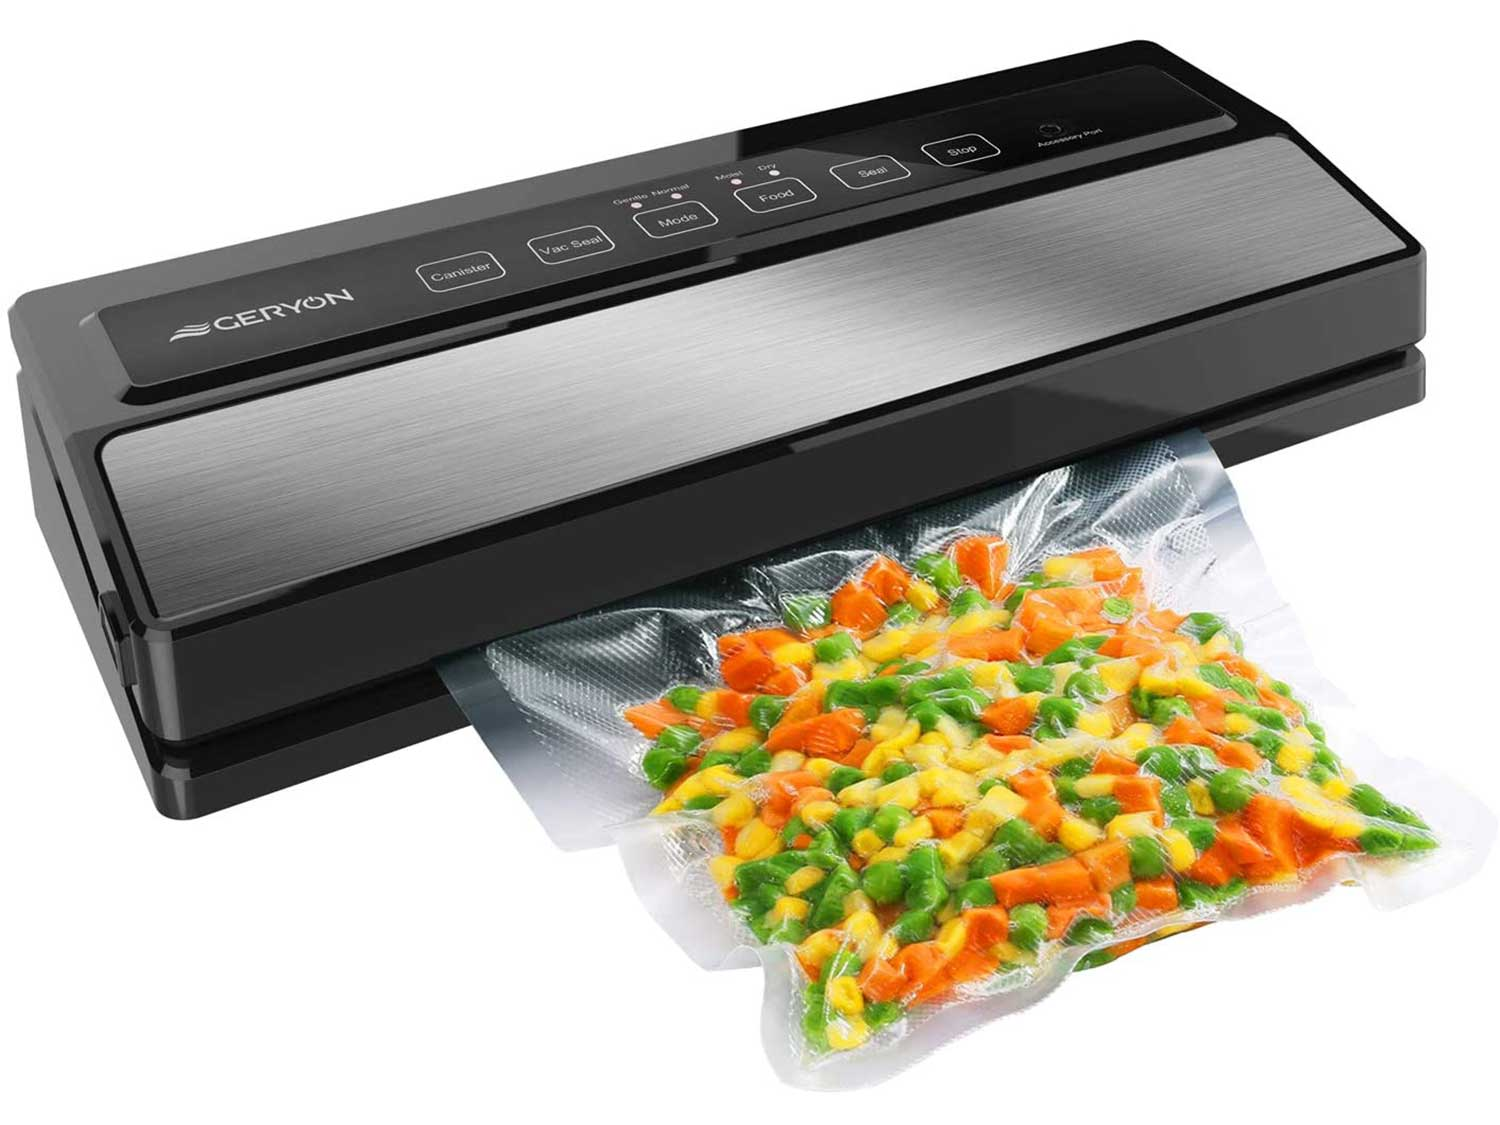 GERYON Vacuum Sealer Machine, Automatic Food Sealer for Food Savers w/Starter Kit Led Indicator Lights Easy to Clean Dry & Moist Food Modes  Compact Design (Silver)